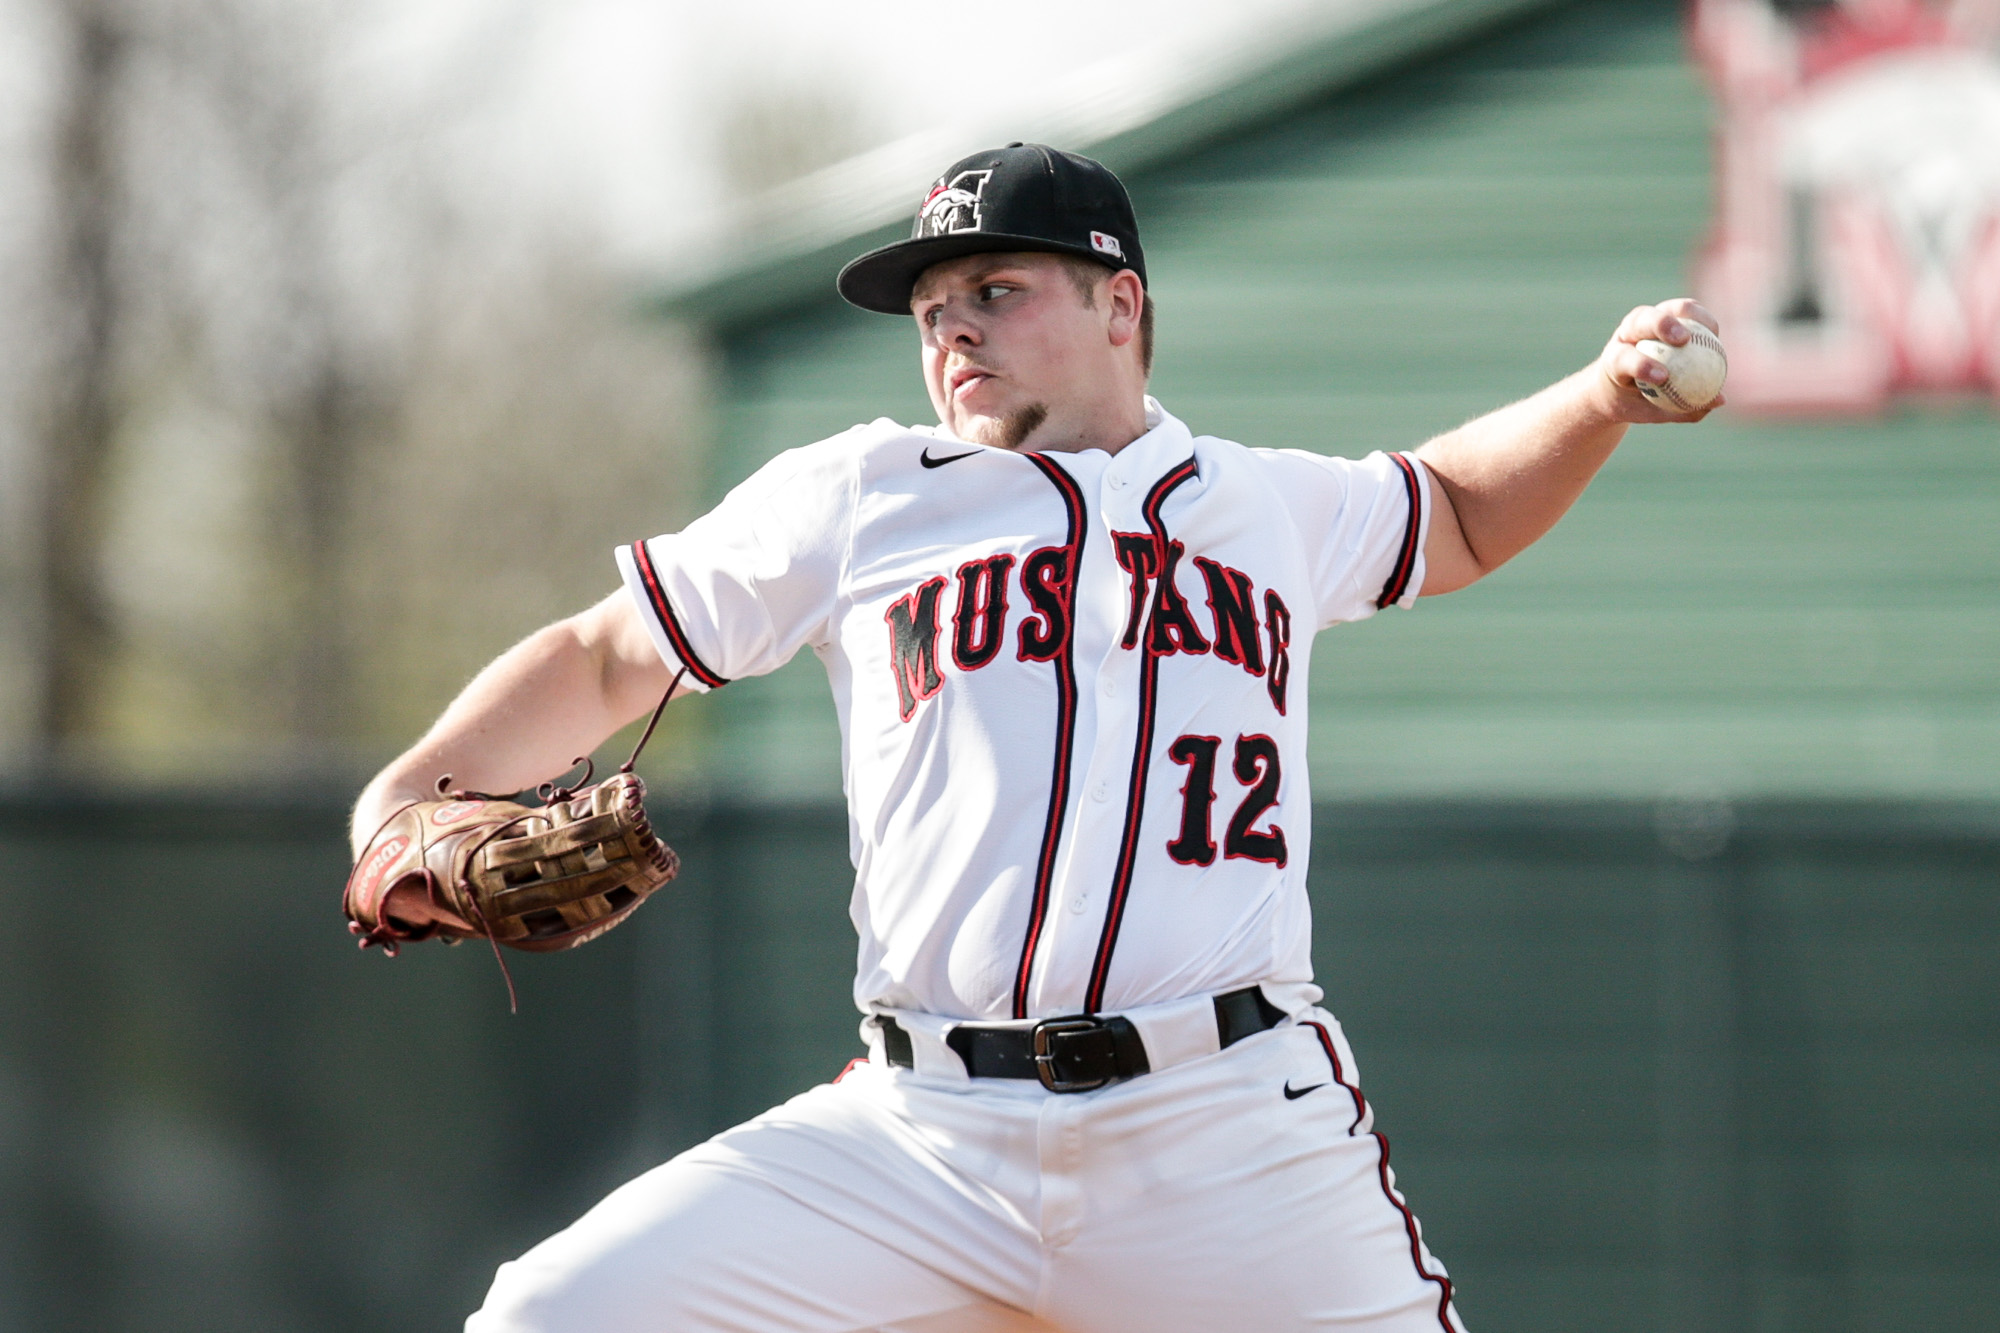 Solid Pitching by Corley Leads to Mustang 111 Victory